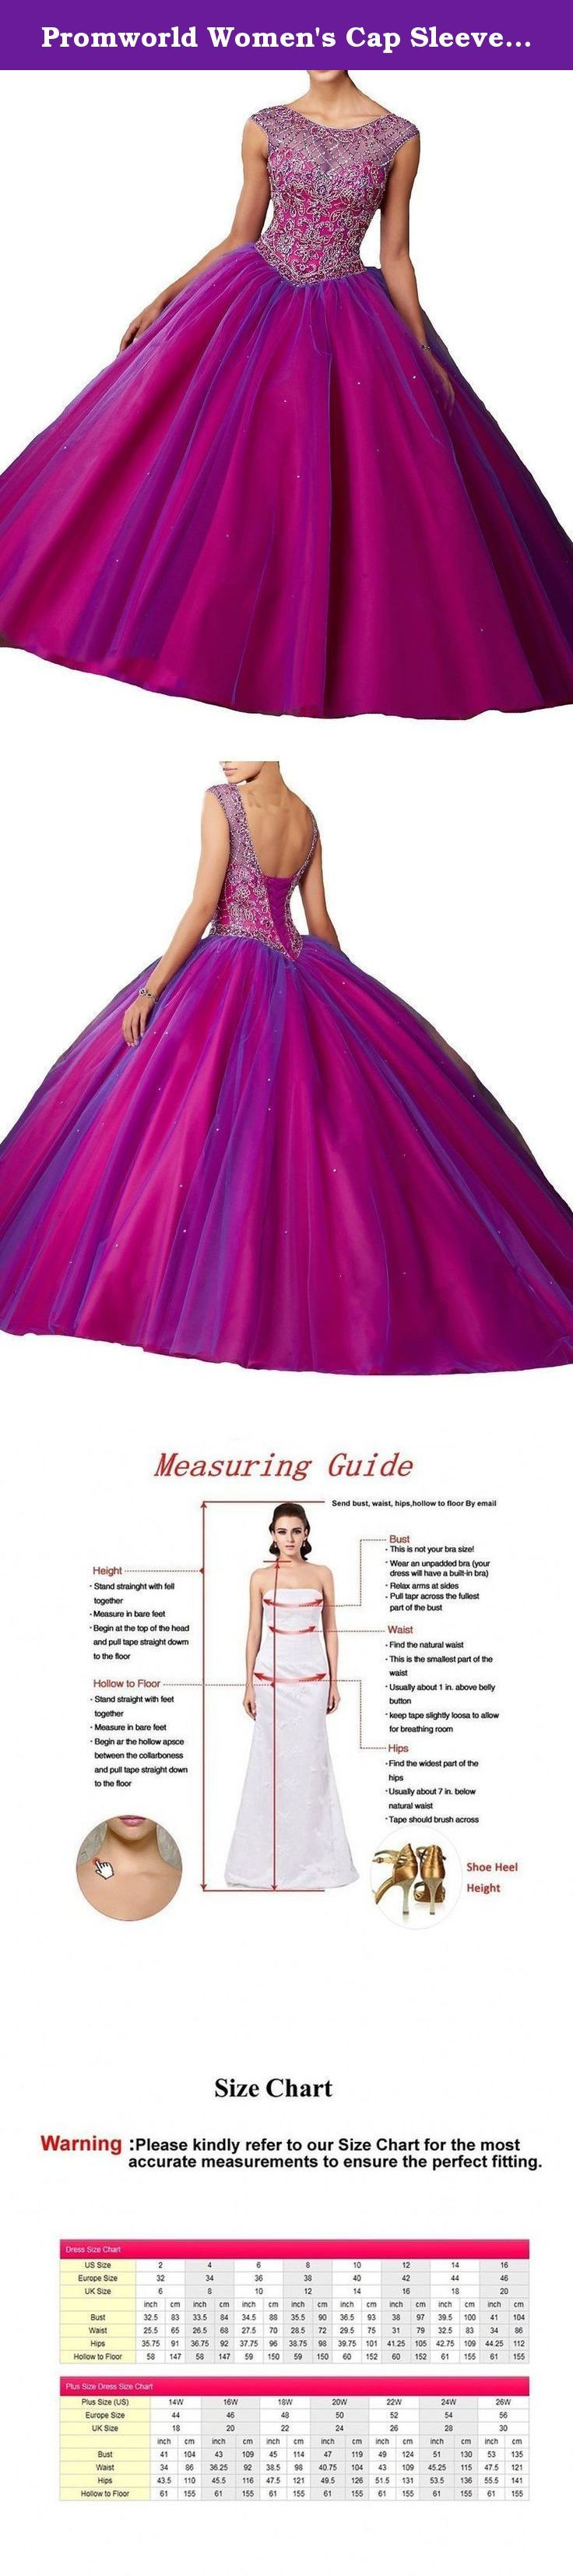 Promworld Women's Cap Sleeve Beaded Quincenera Dress Ball Gown Fuschia US6. More Details Brand: Promworld Condition: New/Made-to-Order Neckline: Scoop Neck Hemline/Train: Long/Floor Length Silhouette: A Line Sleeve Length: Cap Sleeve Season: Spring, Summer, Fall Fabric: Tulle Embellishment: Applique Style: Glamorous & Modern Color Available: Champagne, Pink, White, Ivory, Royal Blue, Mint, Coral, Black, Lilac, Lavender, Navy, Purple, Grey, Turquoise, Watermelon, Blue, Red, Yellow, Orange...